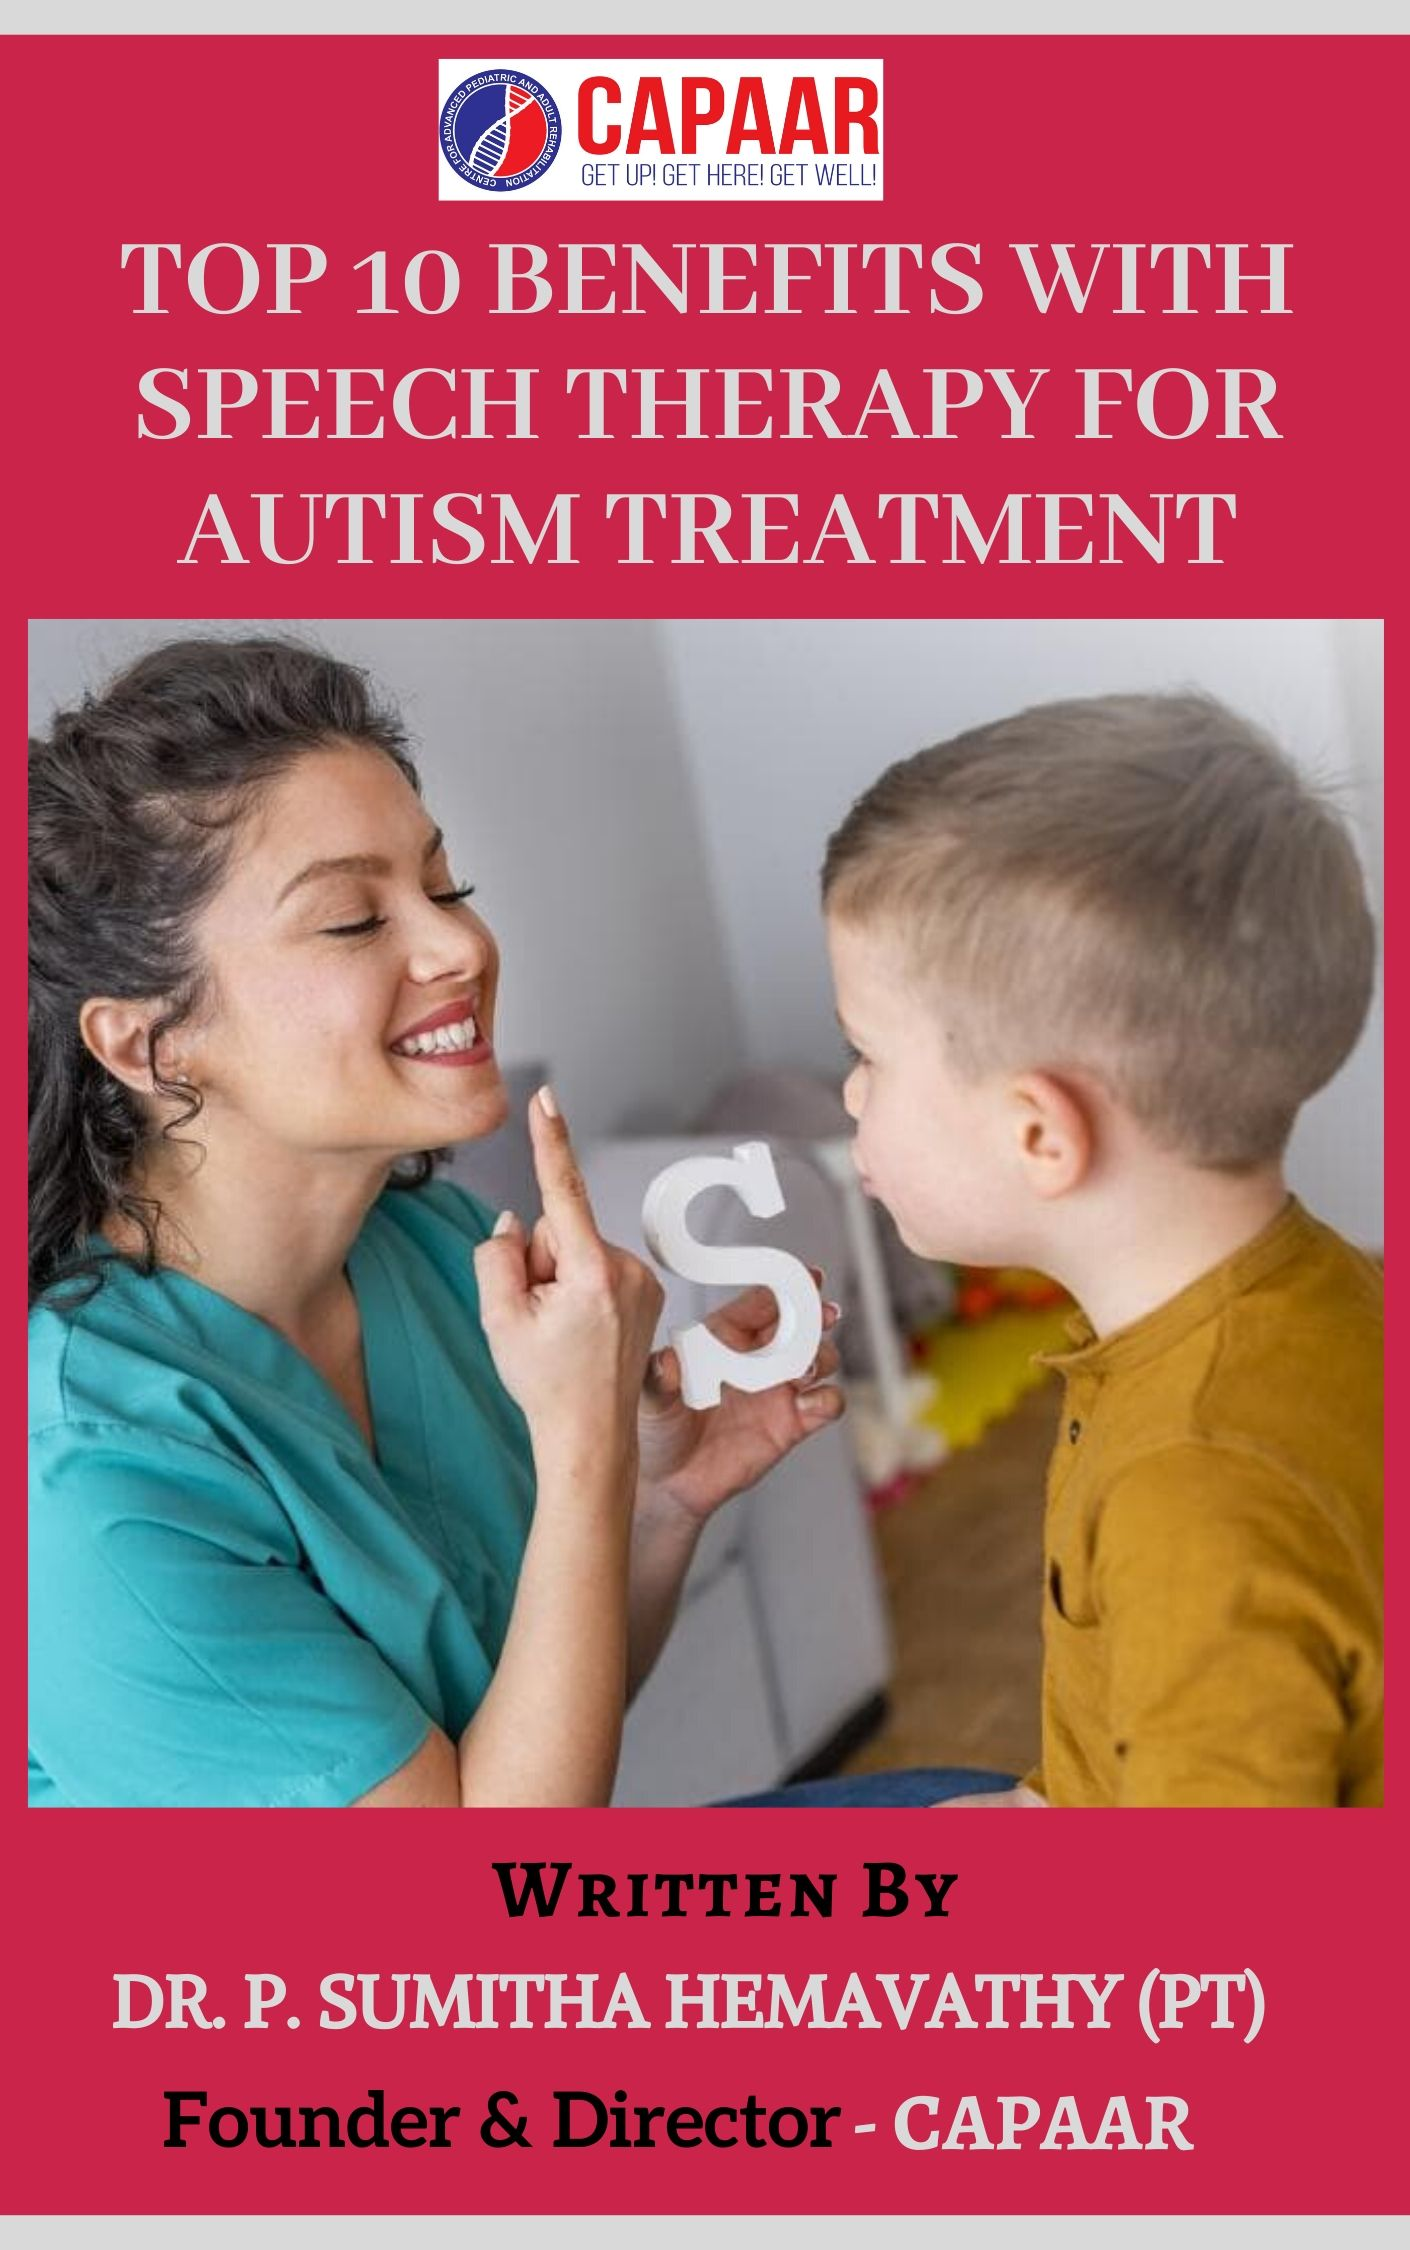 Top 10 Benefits with Speech Therapy for Autism Treatment